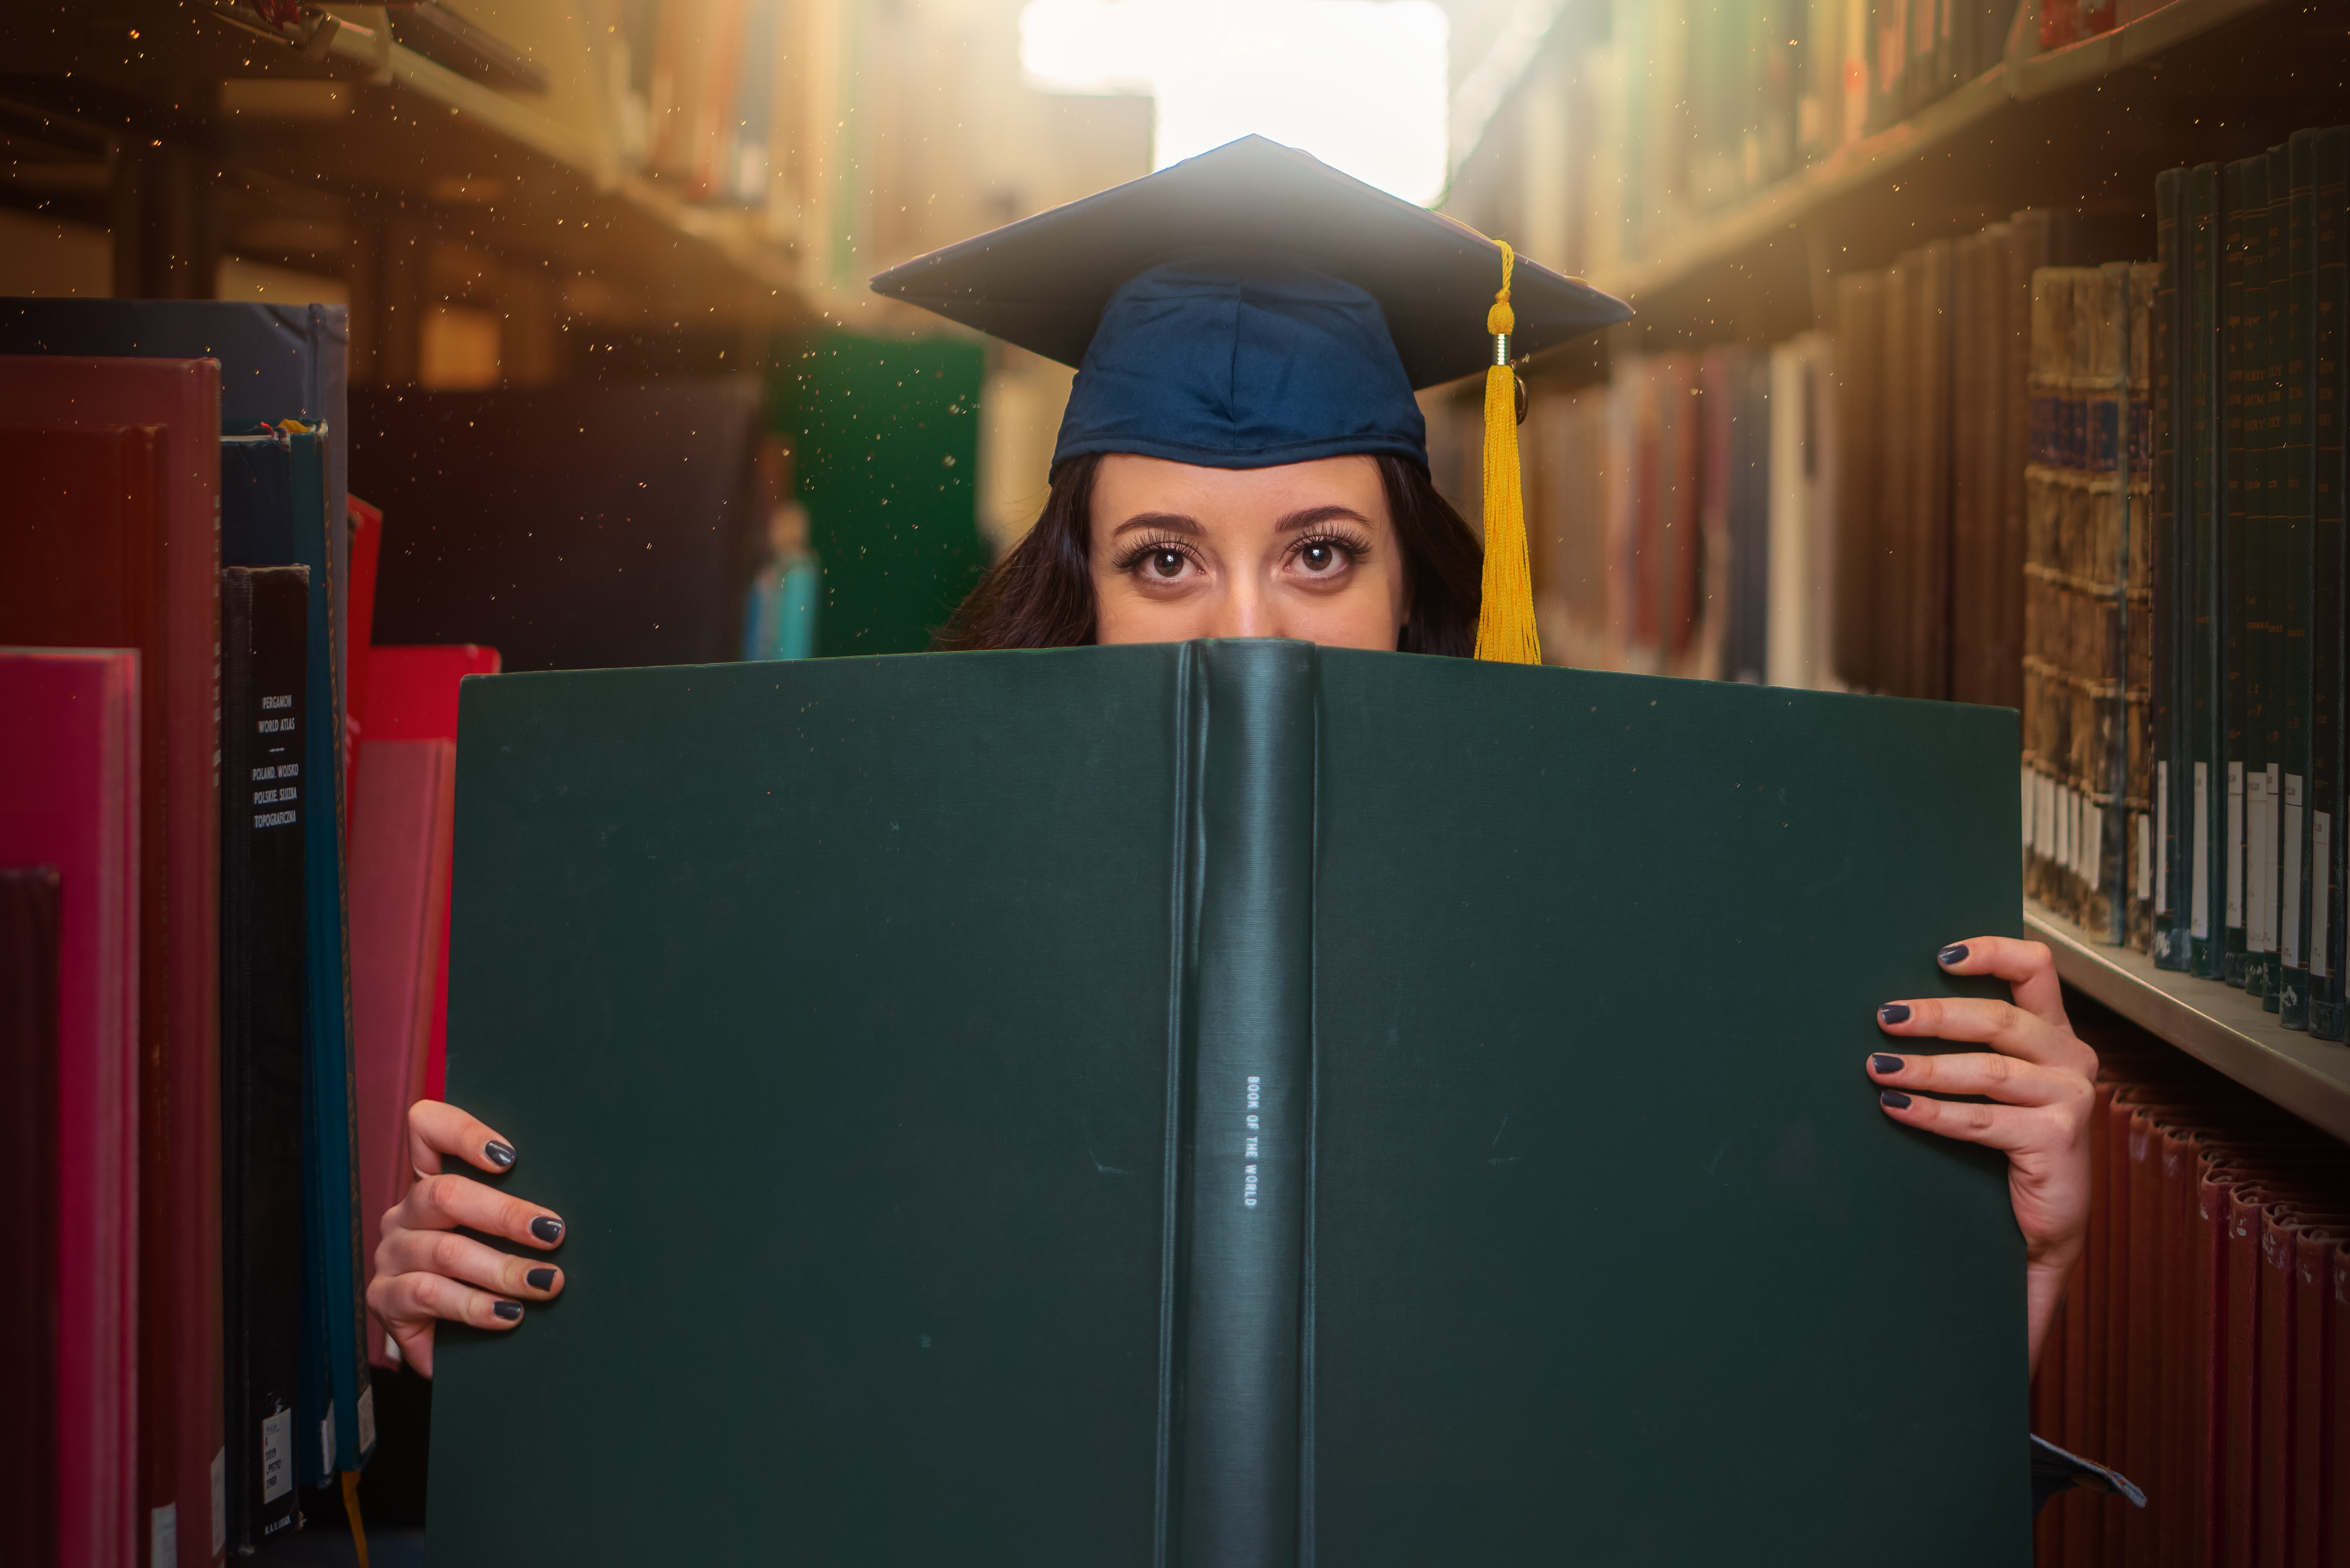 Between library shelves, a woman wearing a graduation cap looking over the top of a book.